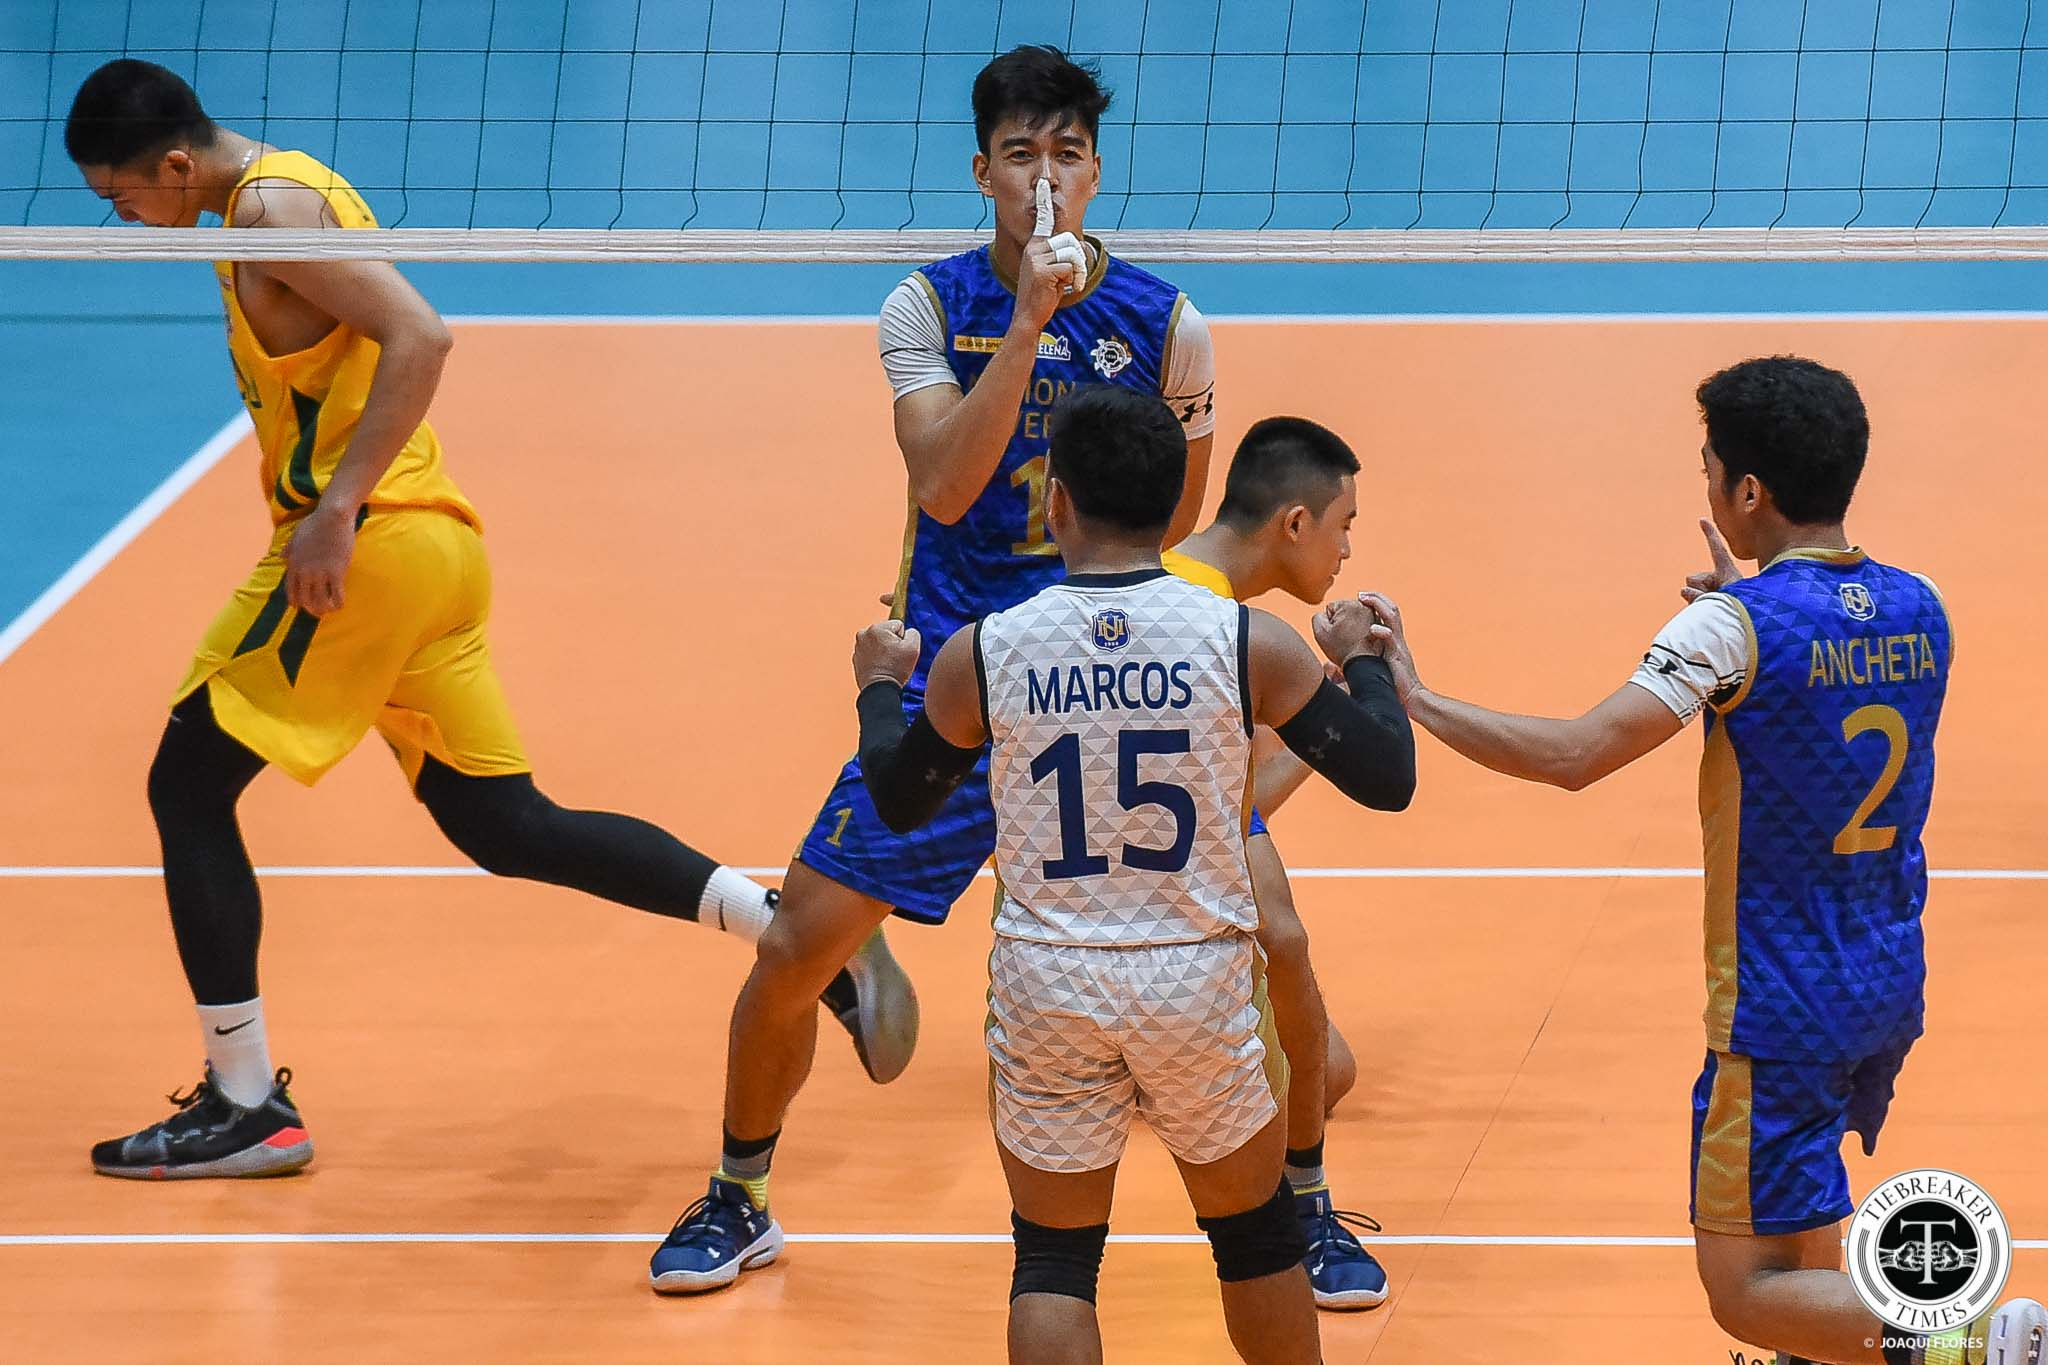 Tiebreaker Times NU Bulldogs topple FEU for Final Four top billing FEU News NU UAAP Volleyball  UAAP Season 81 Men's Volleyball UAAP Season 81 RJ Paler Ricky Marcos Rey Diaz NU Men's Volleyball Nico Almendras Jude Garcia Joshua Retamar FEU Men's Volleyball Dante Alinsunurin Bryan Bagunas